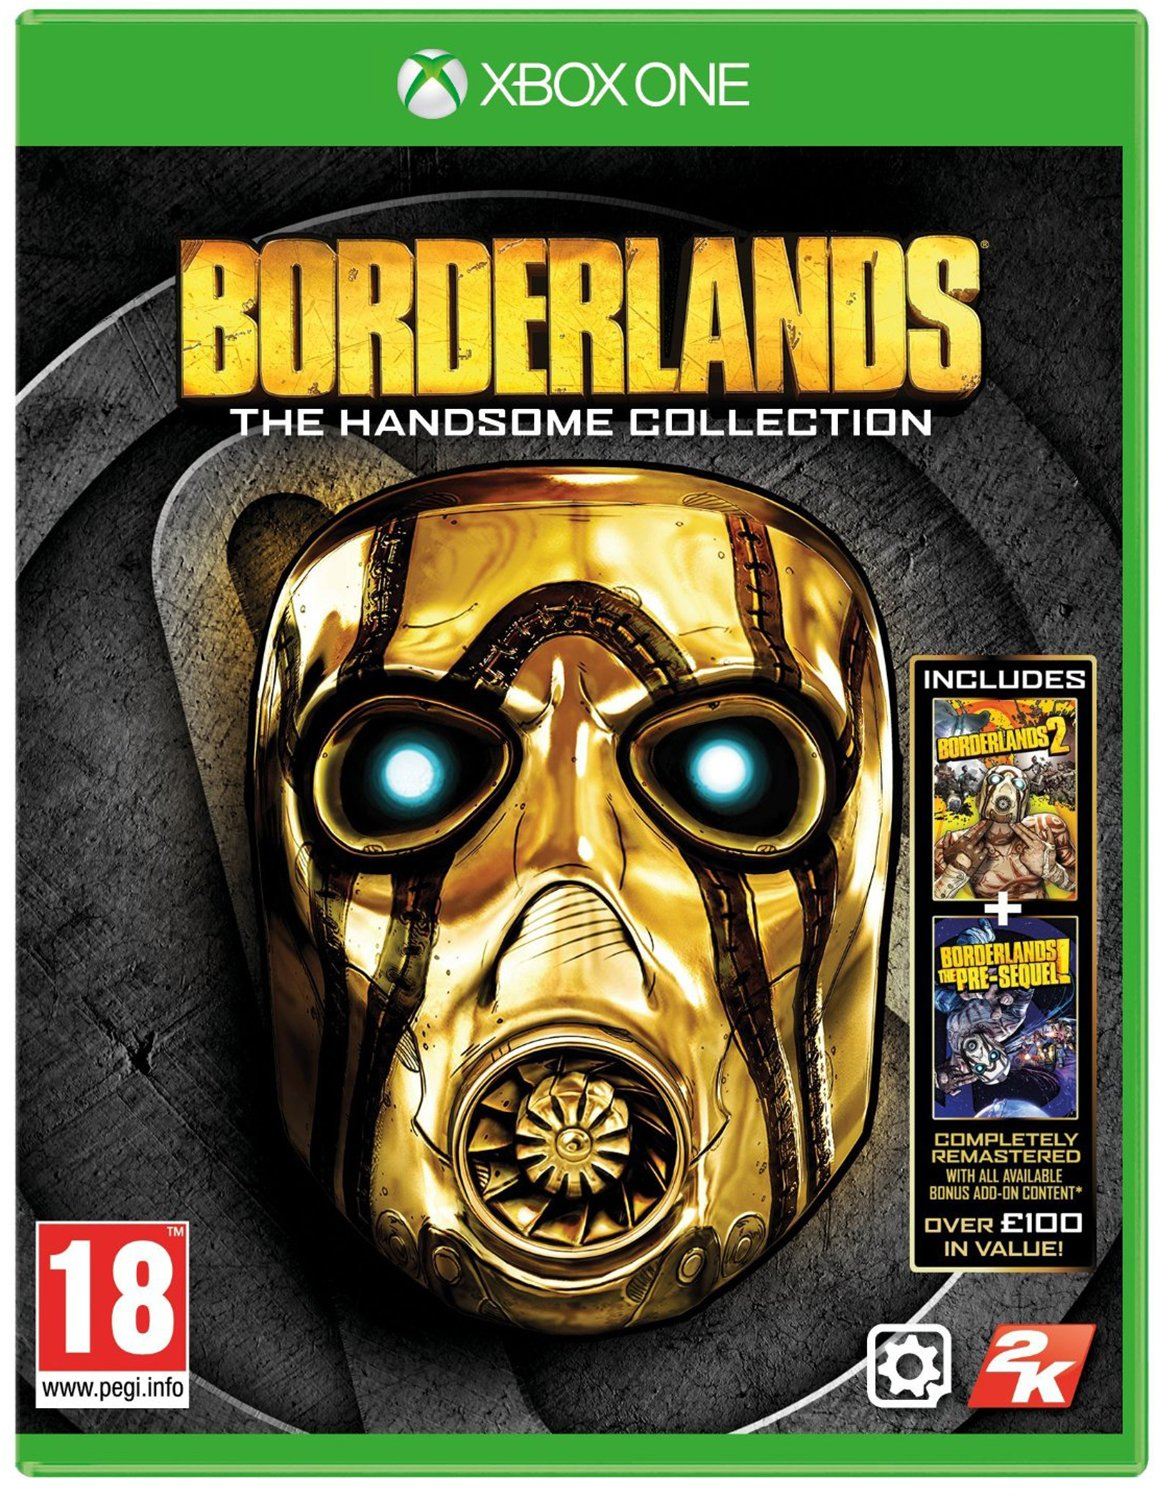 Image of Borderlands: The Handsome Collection Xbox One Game